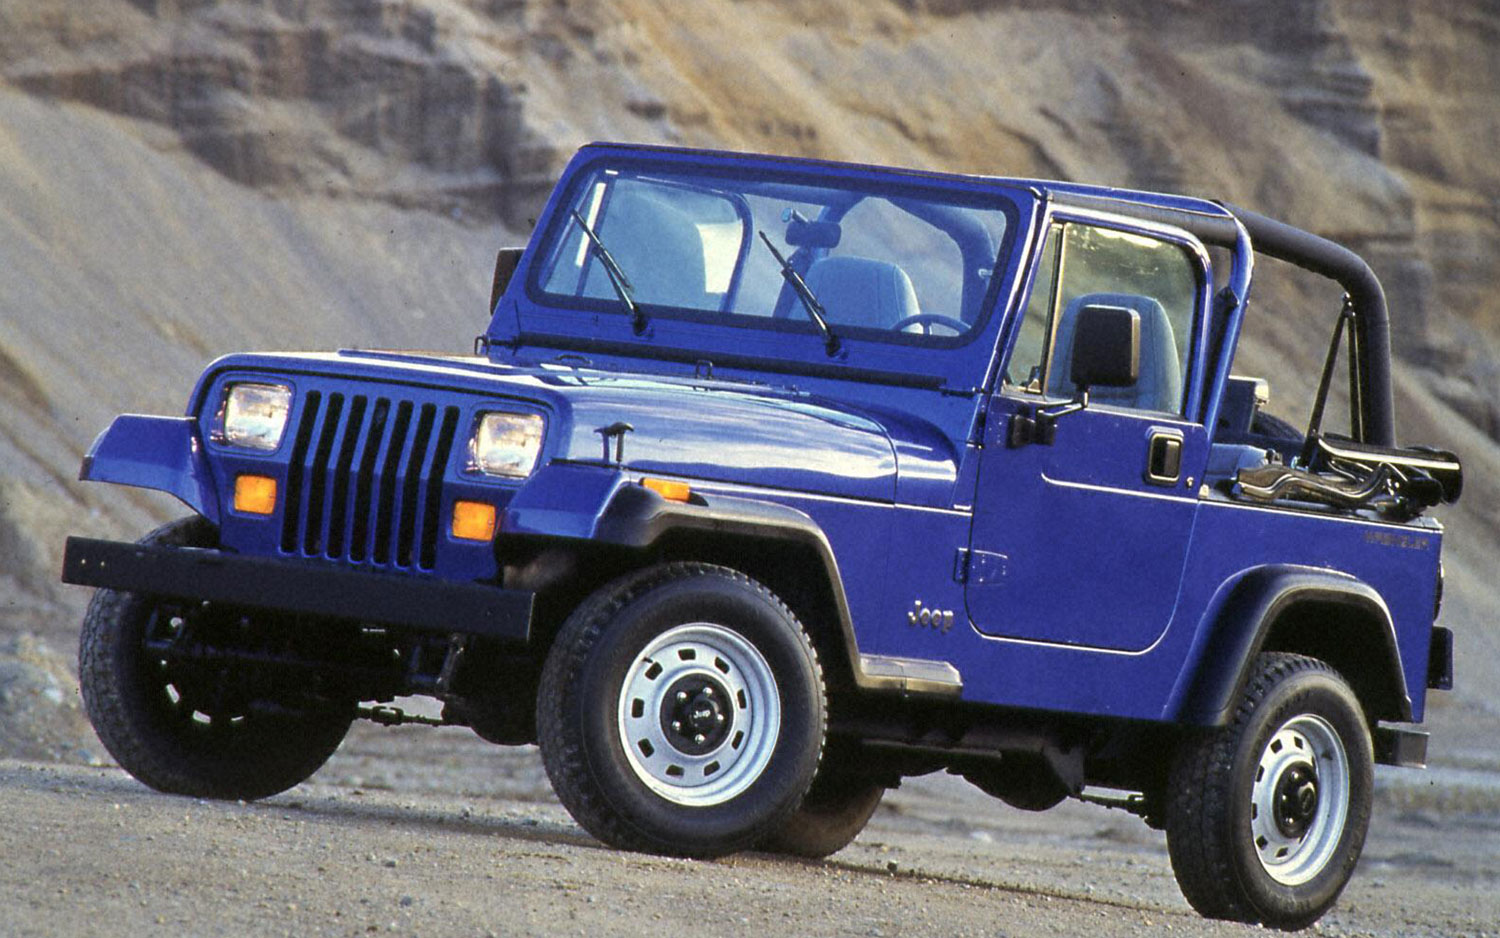 First Generation Jeep Wrangler YJ